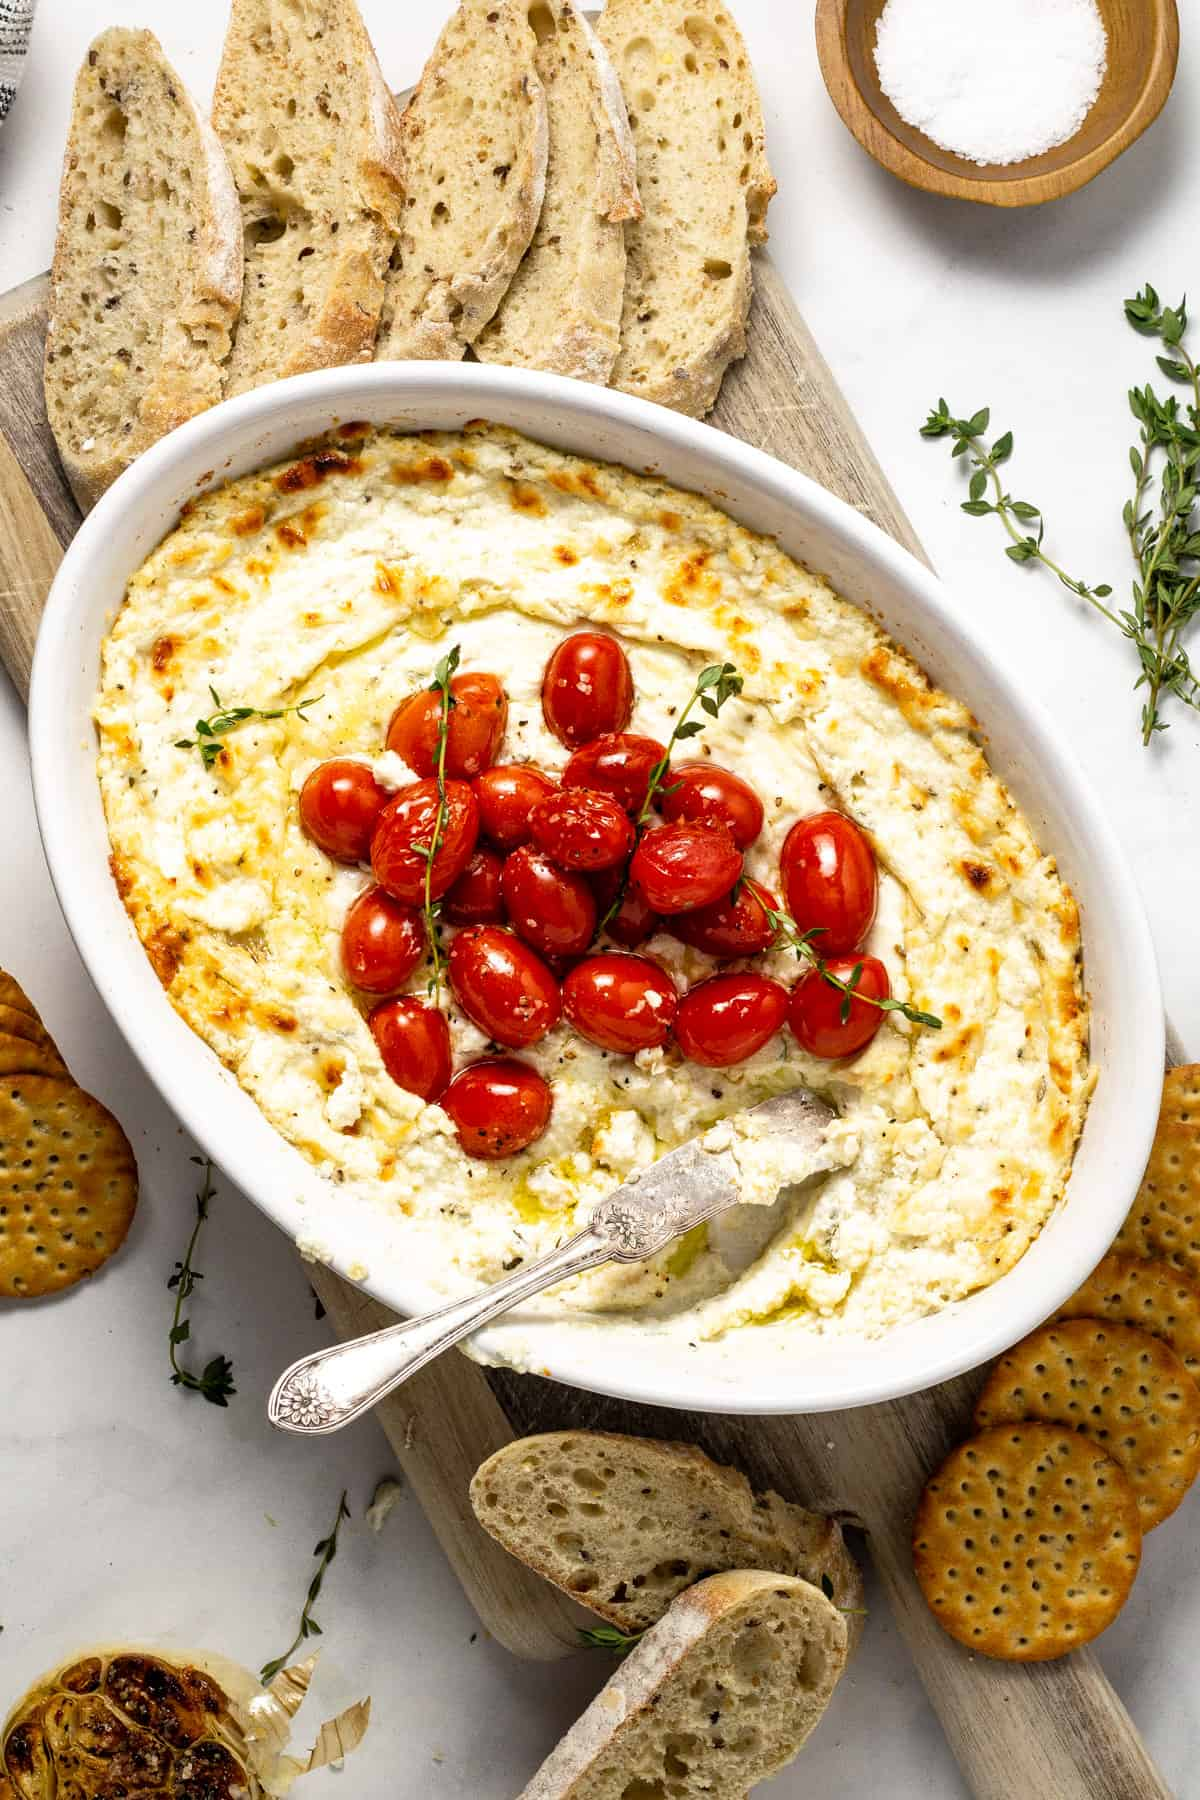 Overshot shot of baked goat cheese dip garnished with roasted tomatoes and fresh thyme